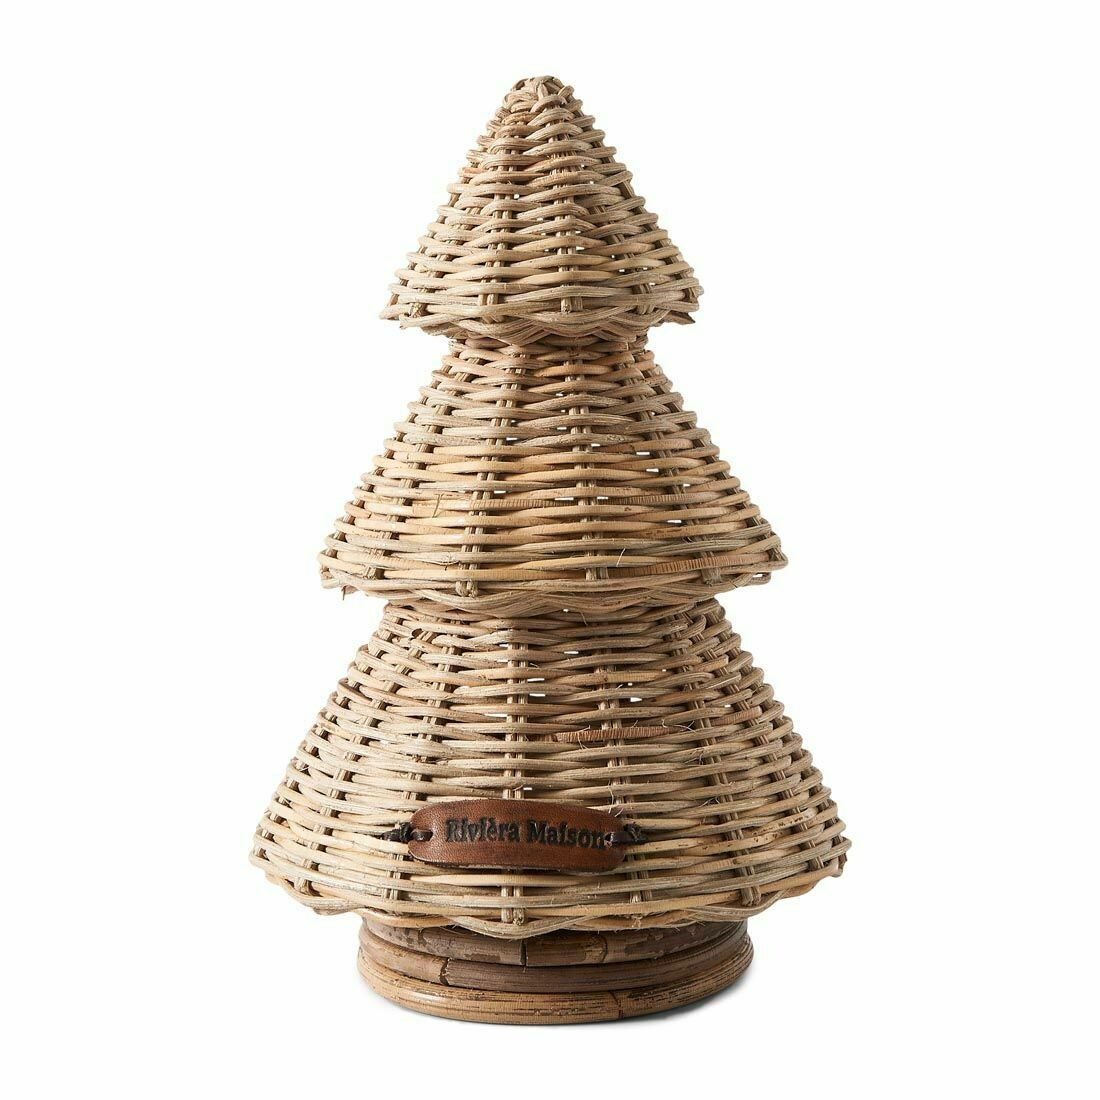 RUSTIC RATTAN MERRY CHRISTMAS TREE S